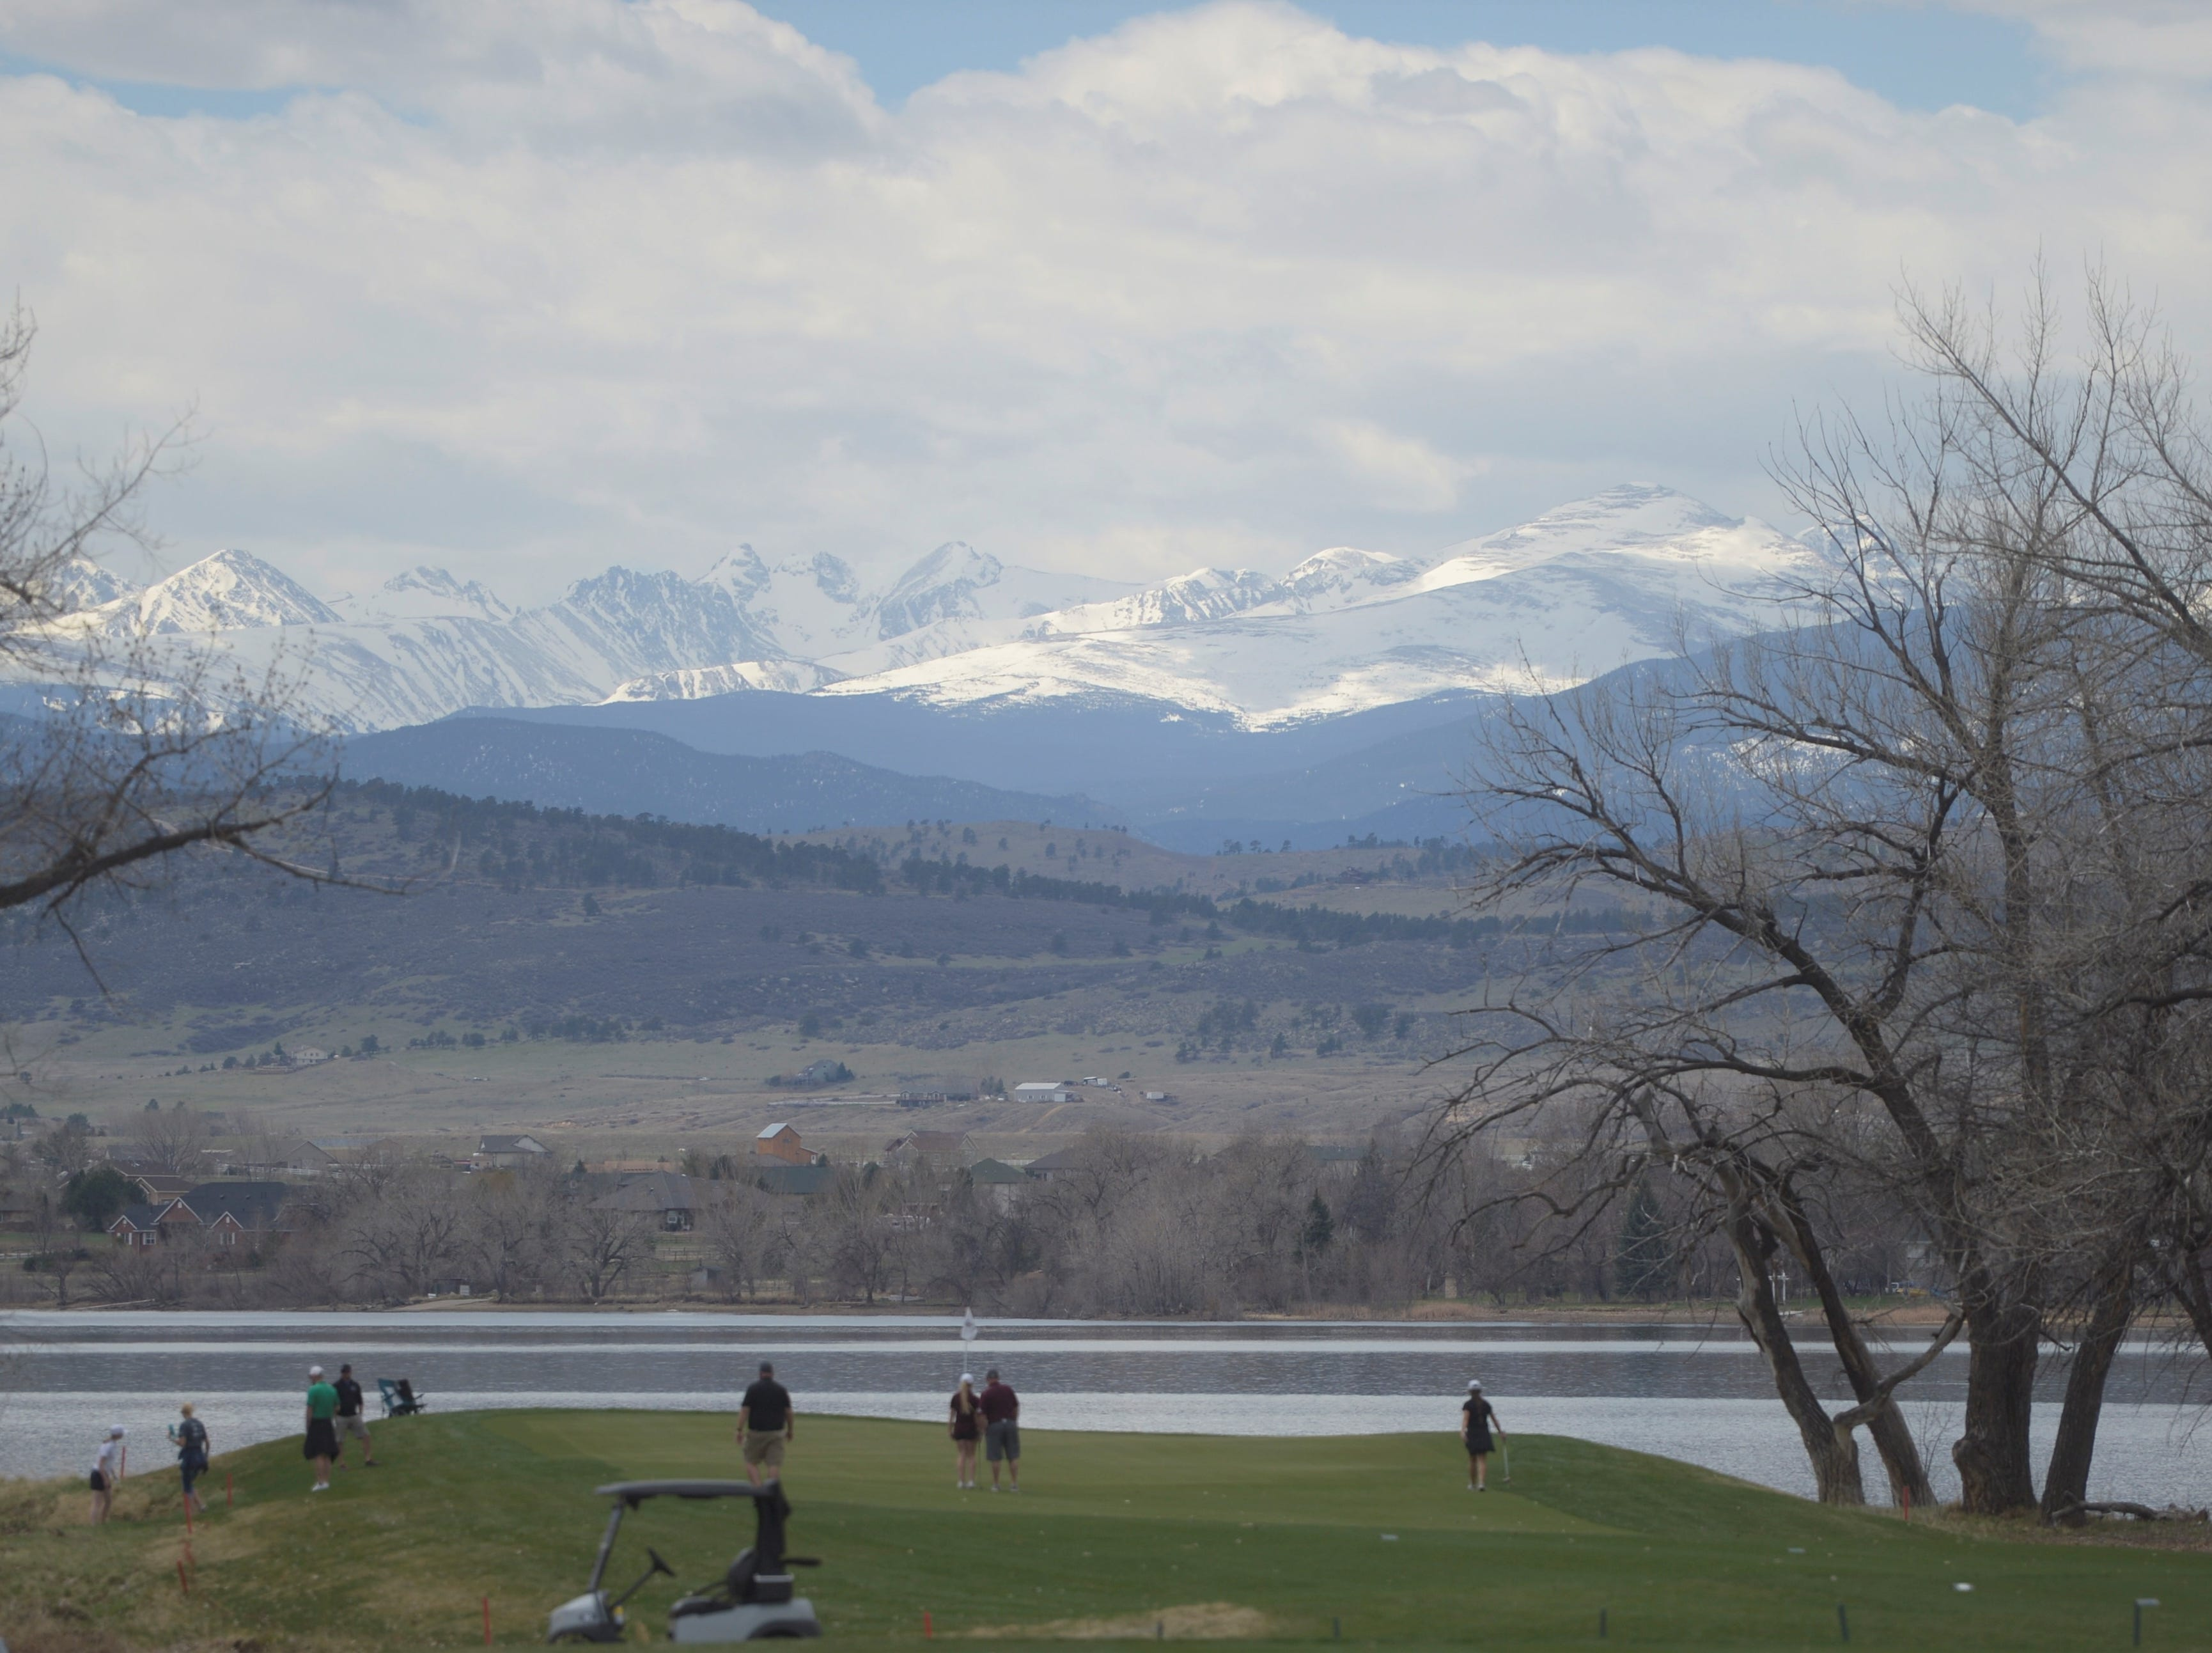 Windsor won the Tri-Valley League match at TPC Colorado in Berthoud on Monday. The new course is the first Tournament Players Club course in the state. It's west of Berthoud with the Twin Peaks as a backdrop. The picturesque hole No. 8 is shown in this photo.